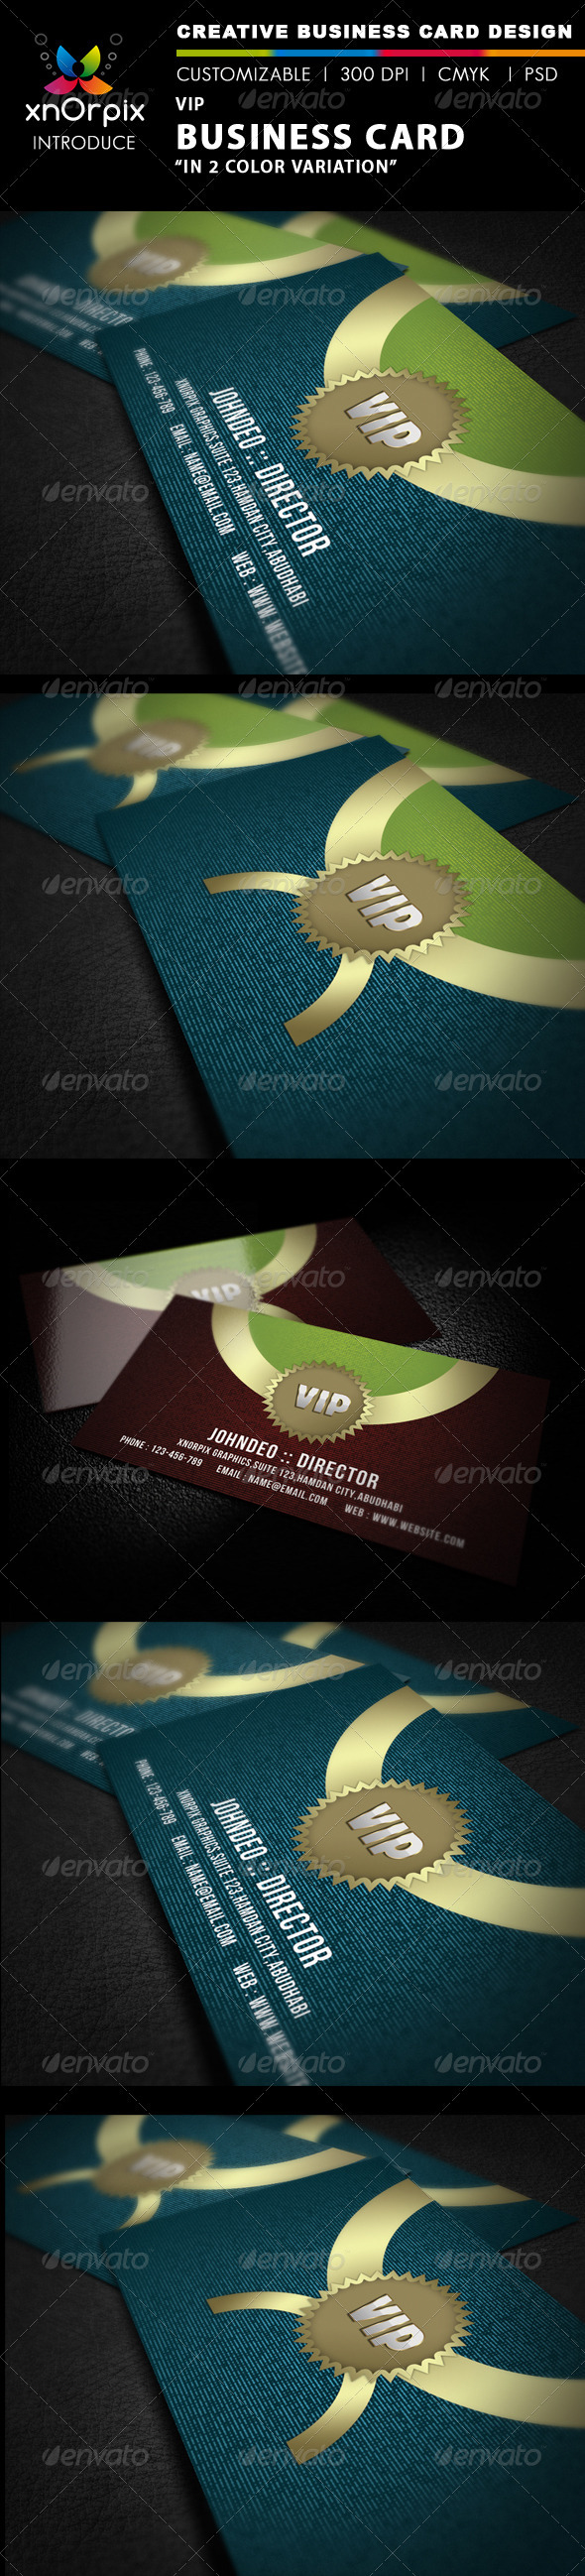 VIP Business Card - Creative Business Cards